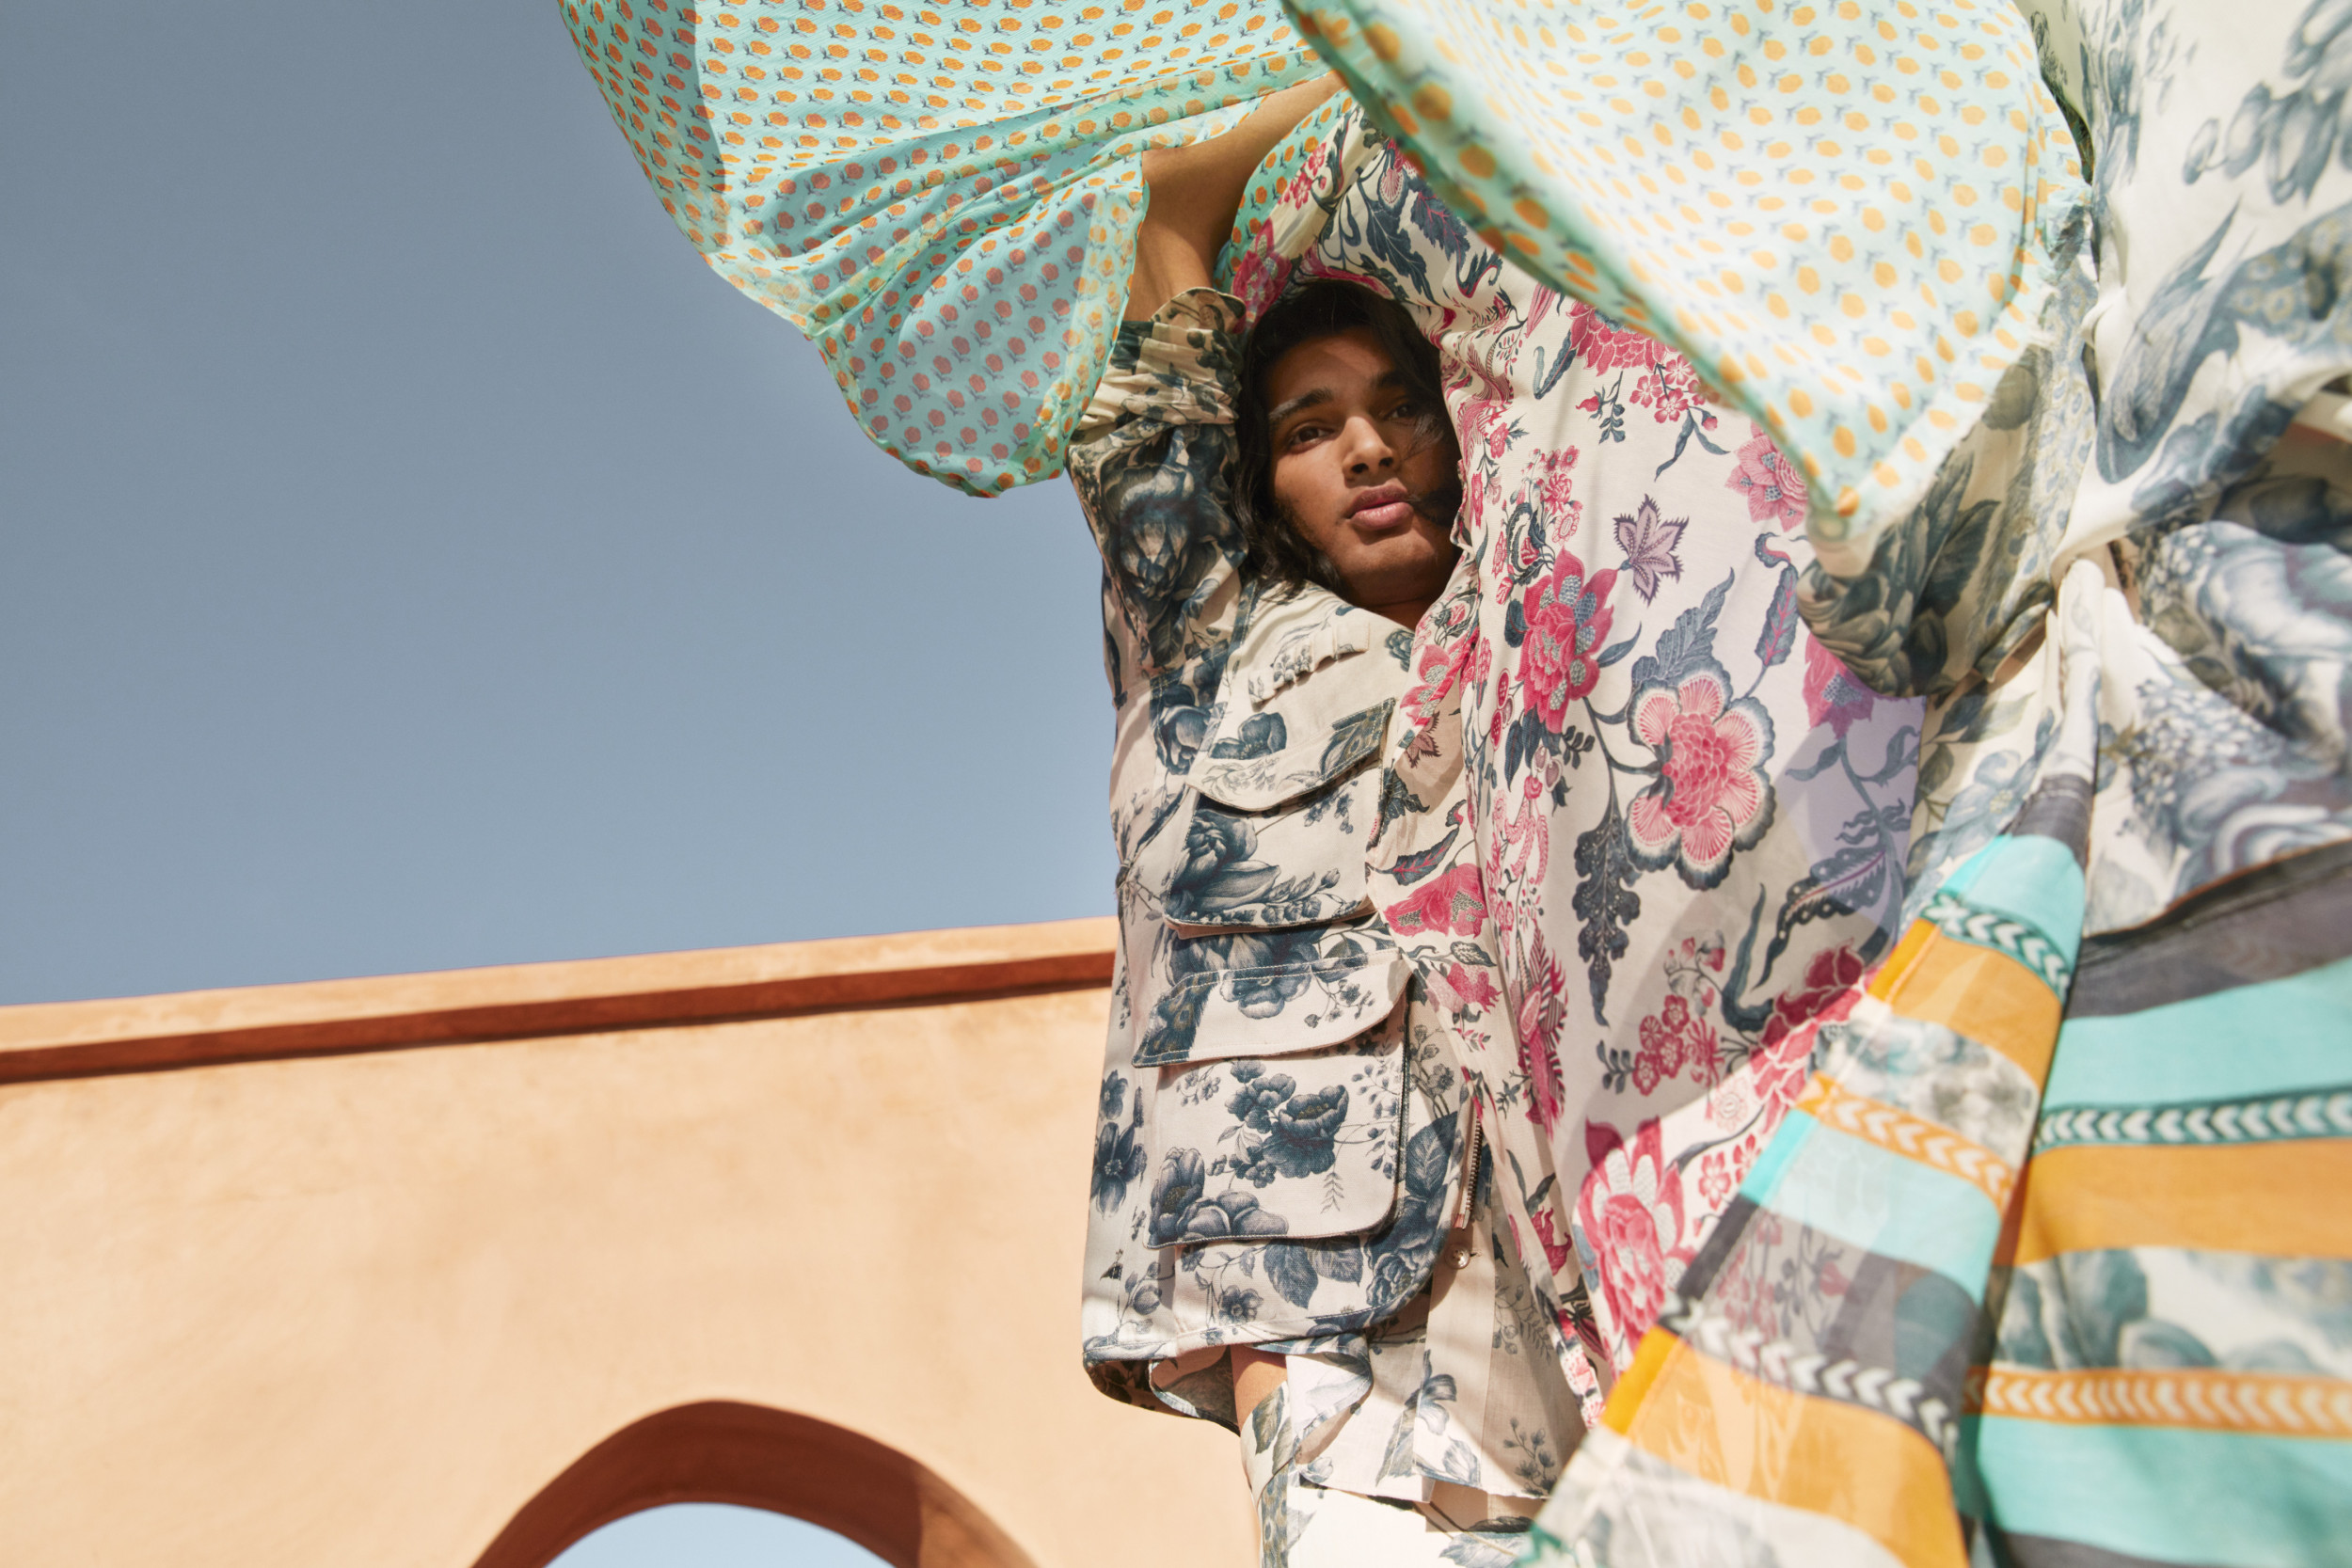 H&M X Sabyasachi Mukherjee: How to Shop the Chain's First Indian Collection in the U.S. thumbnail